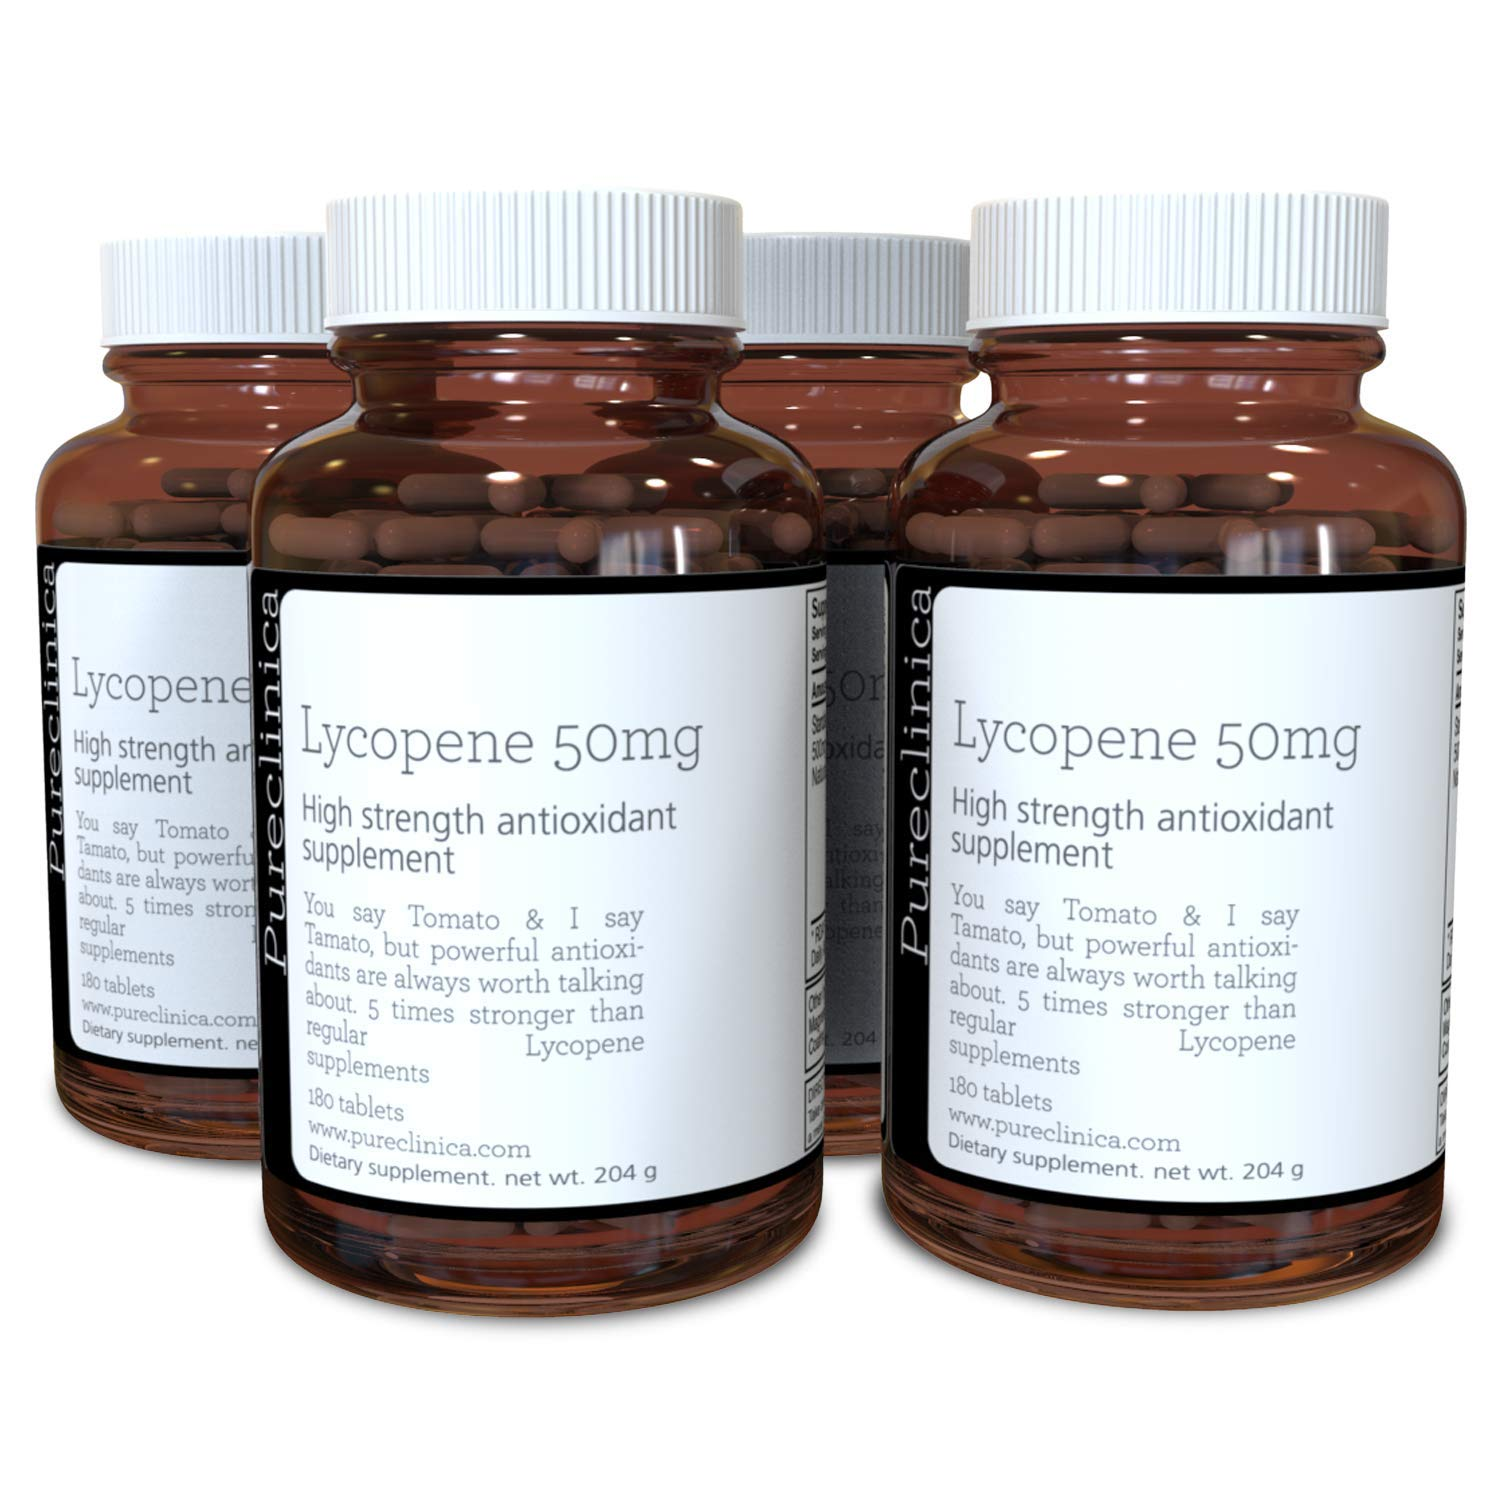 Lycopene 50mg x 720 Tablets (4 Bottles Each with 180 Tablets). 300% Strength of Regular Lycopene Tablets. LY3x4 by pureclinica